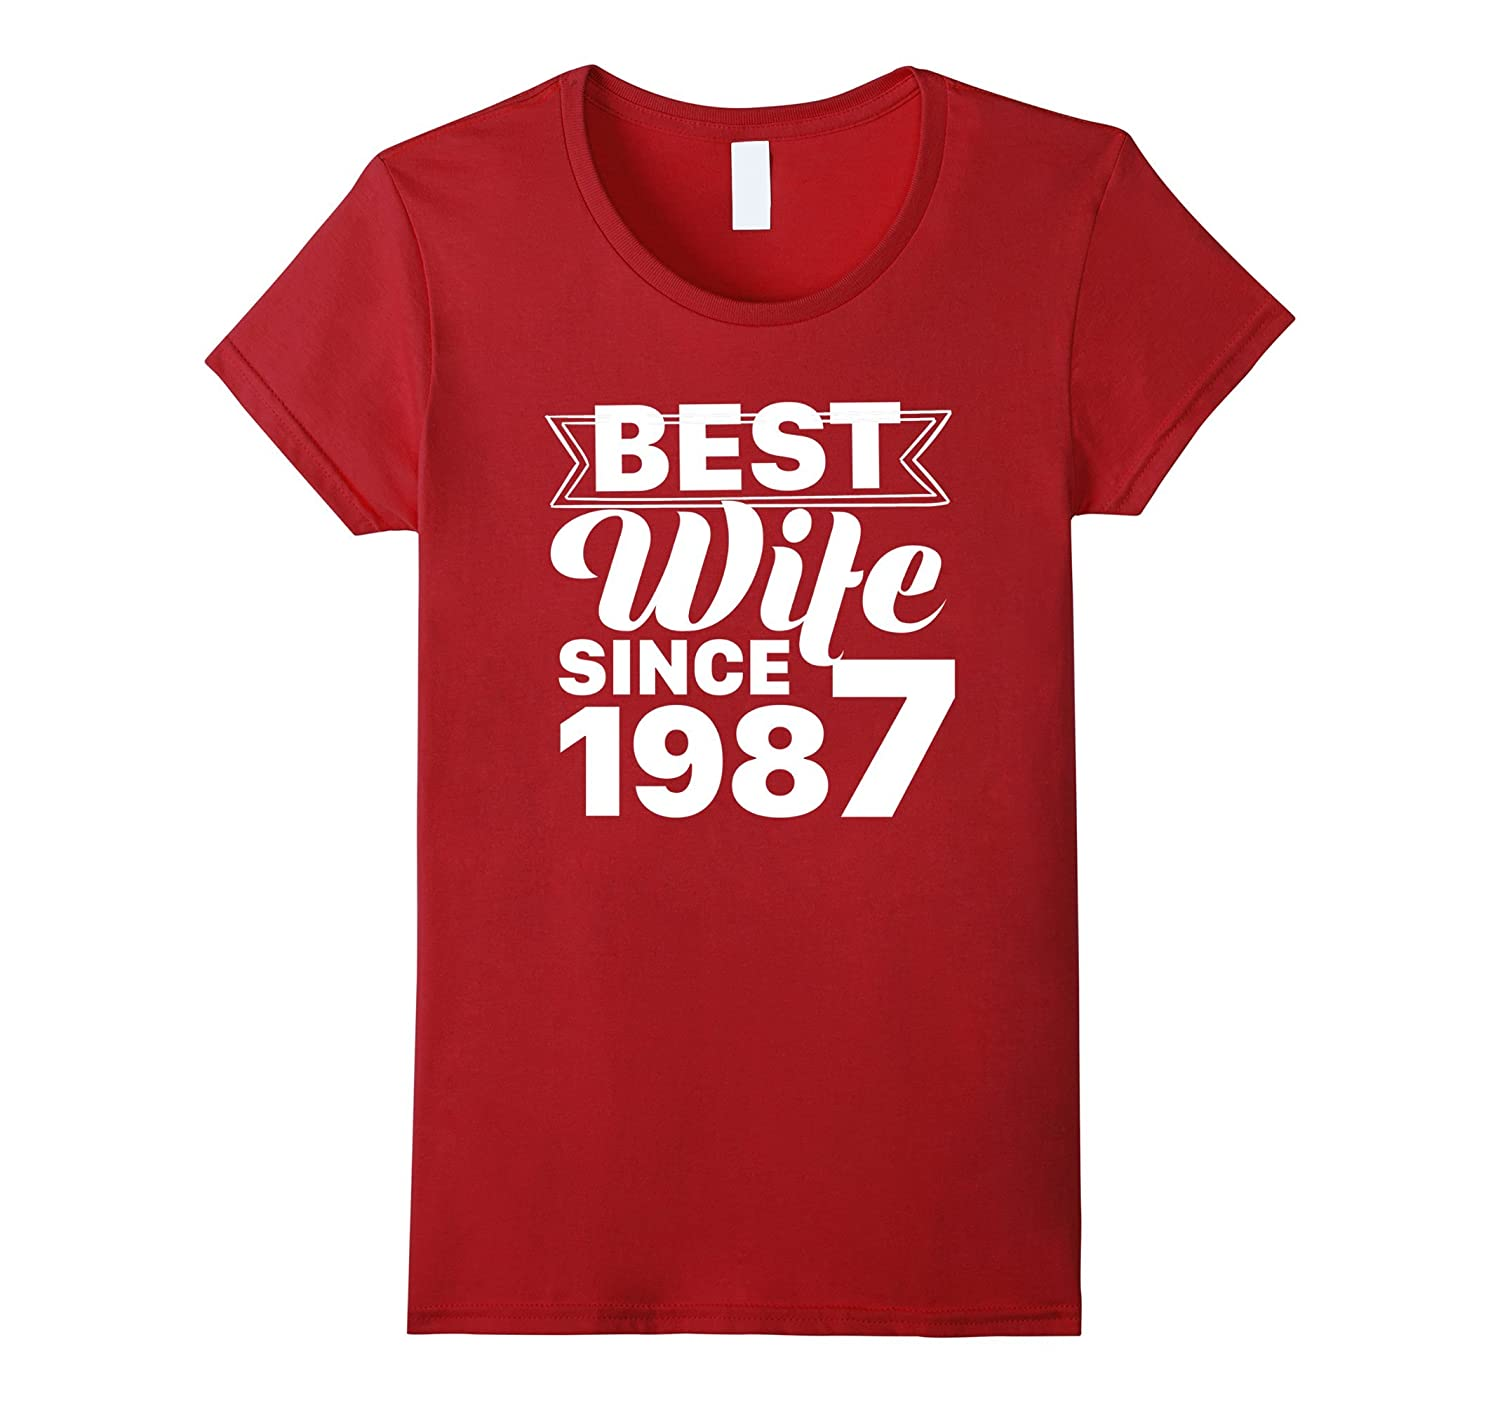 30th Wedding Anniversary Gift Ideas For Her-Wife Since 1987